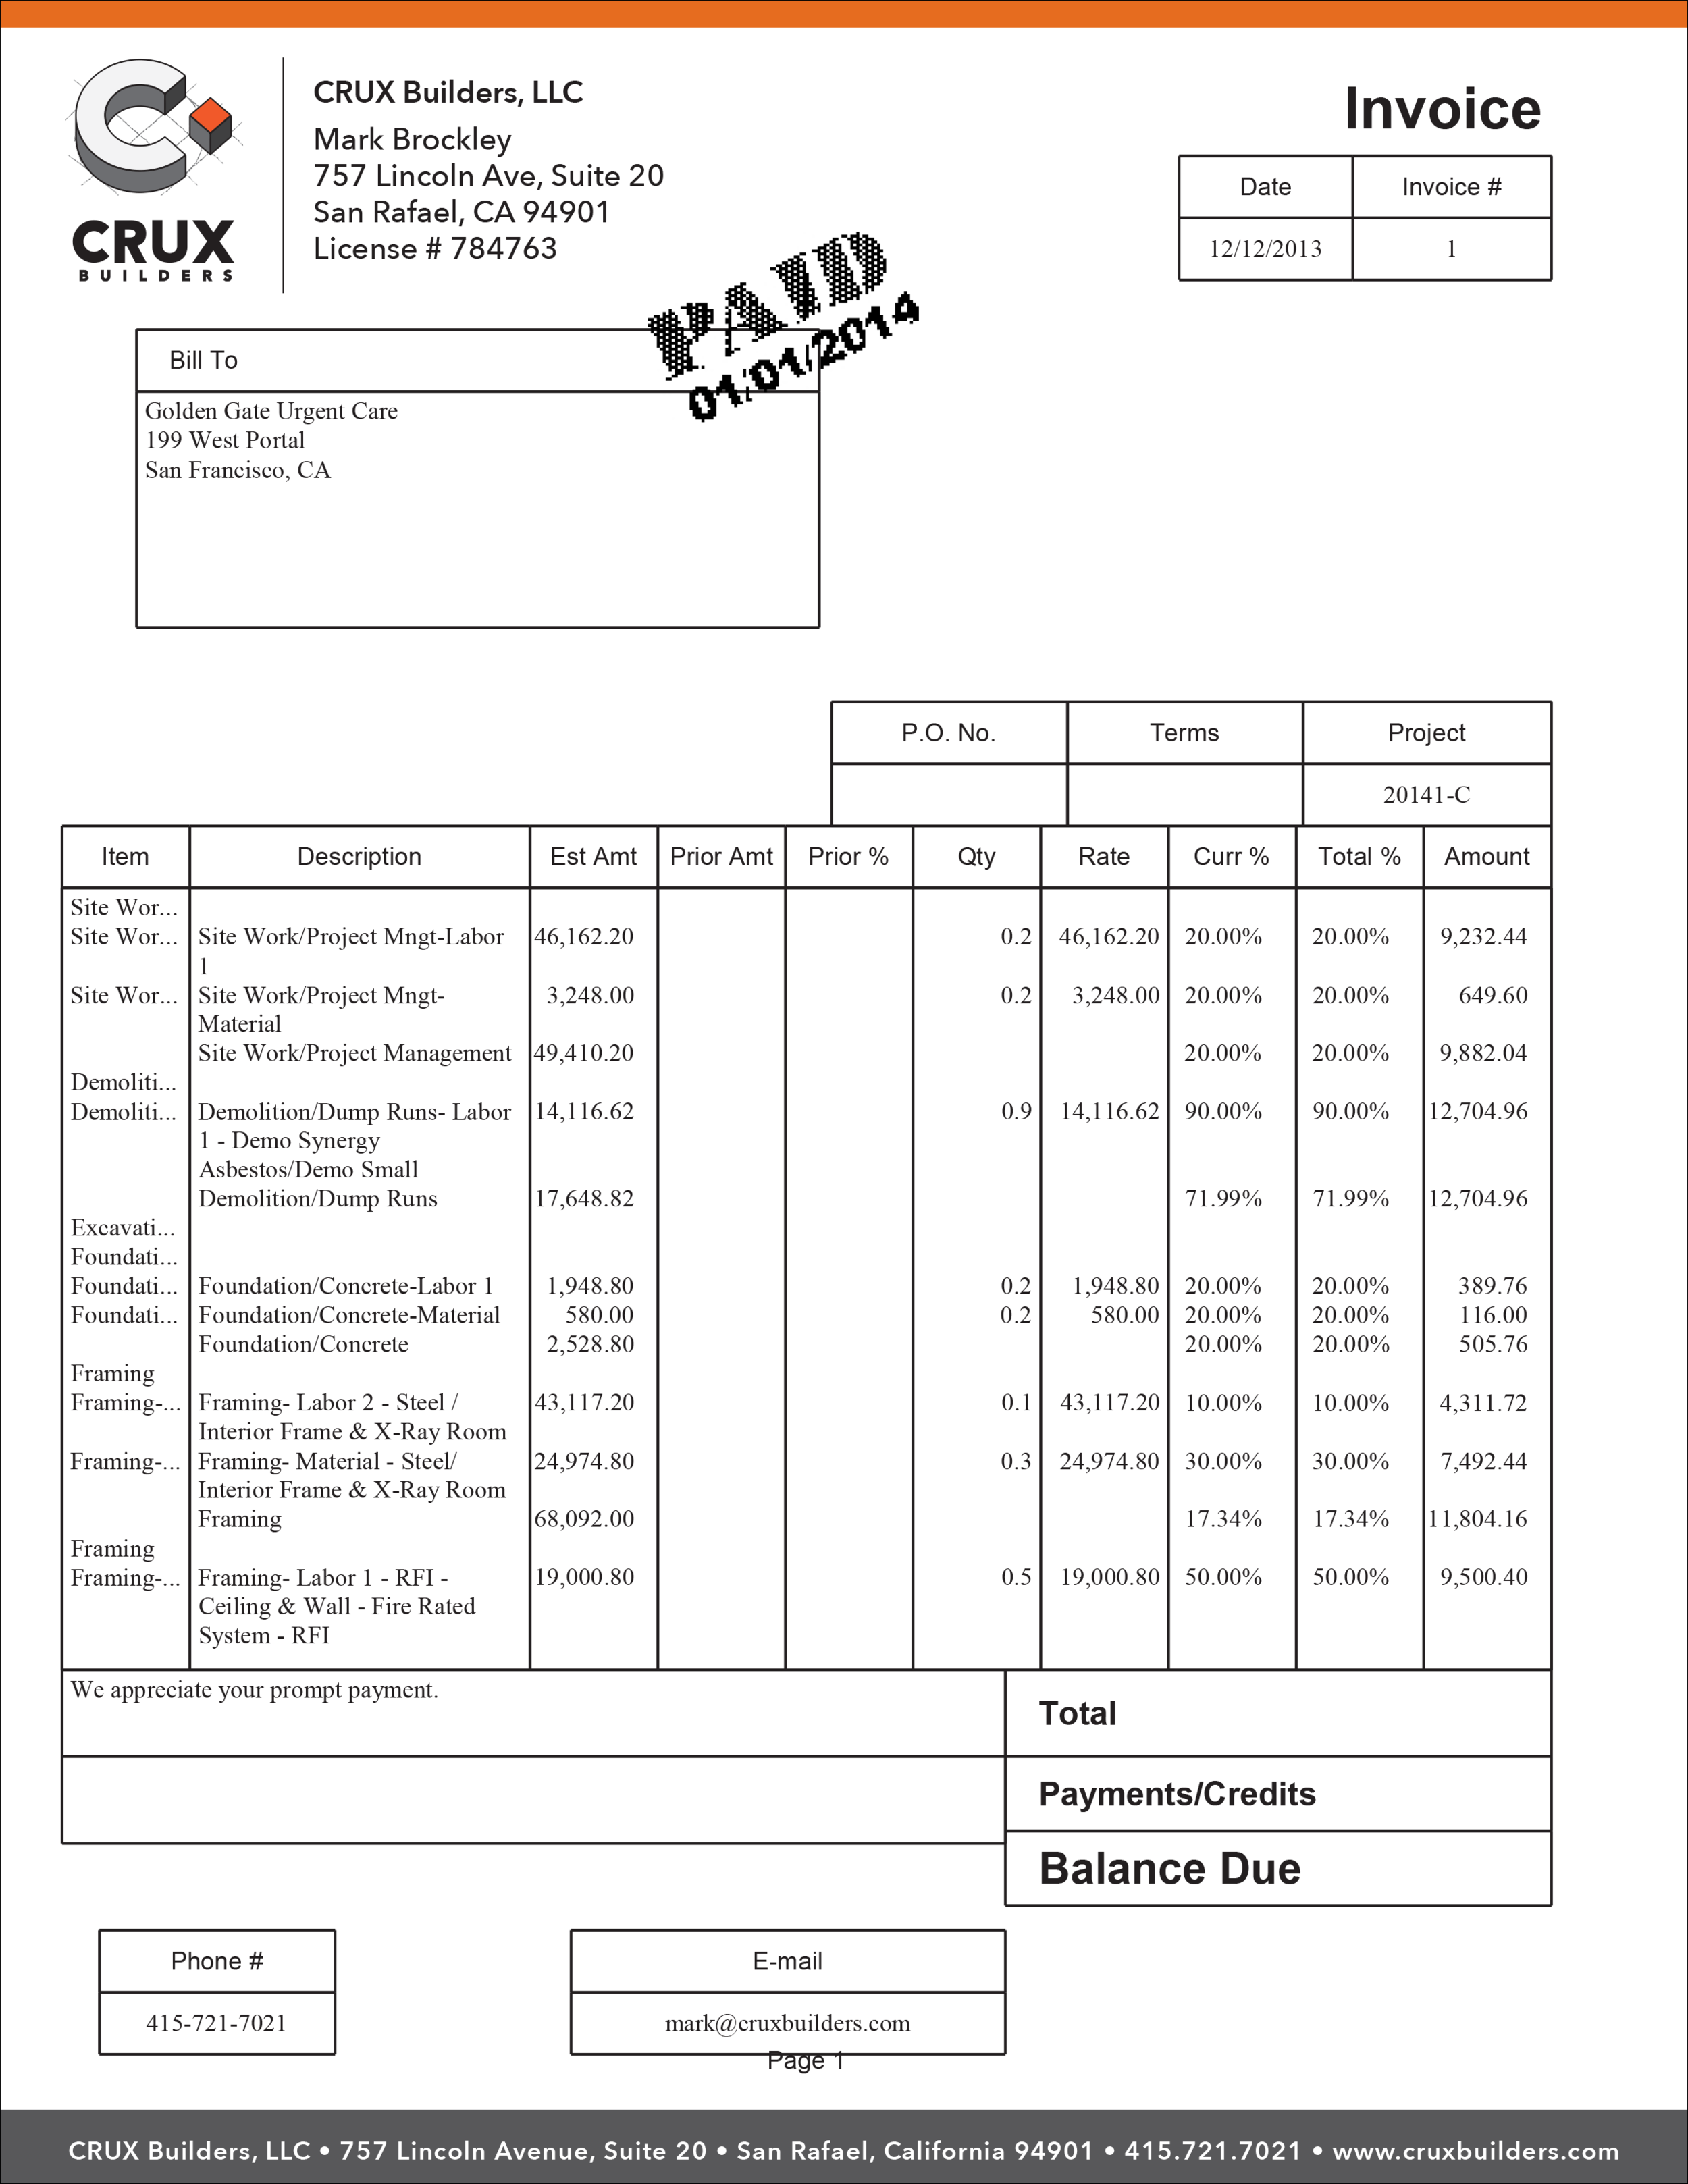 crux-invoice-versions-1.png